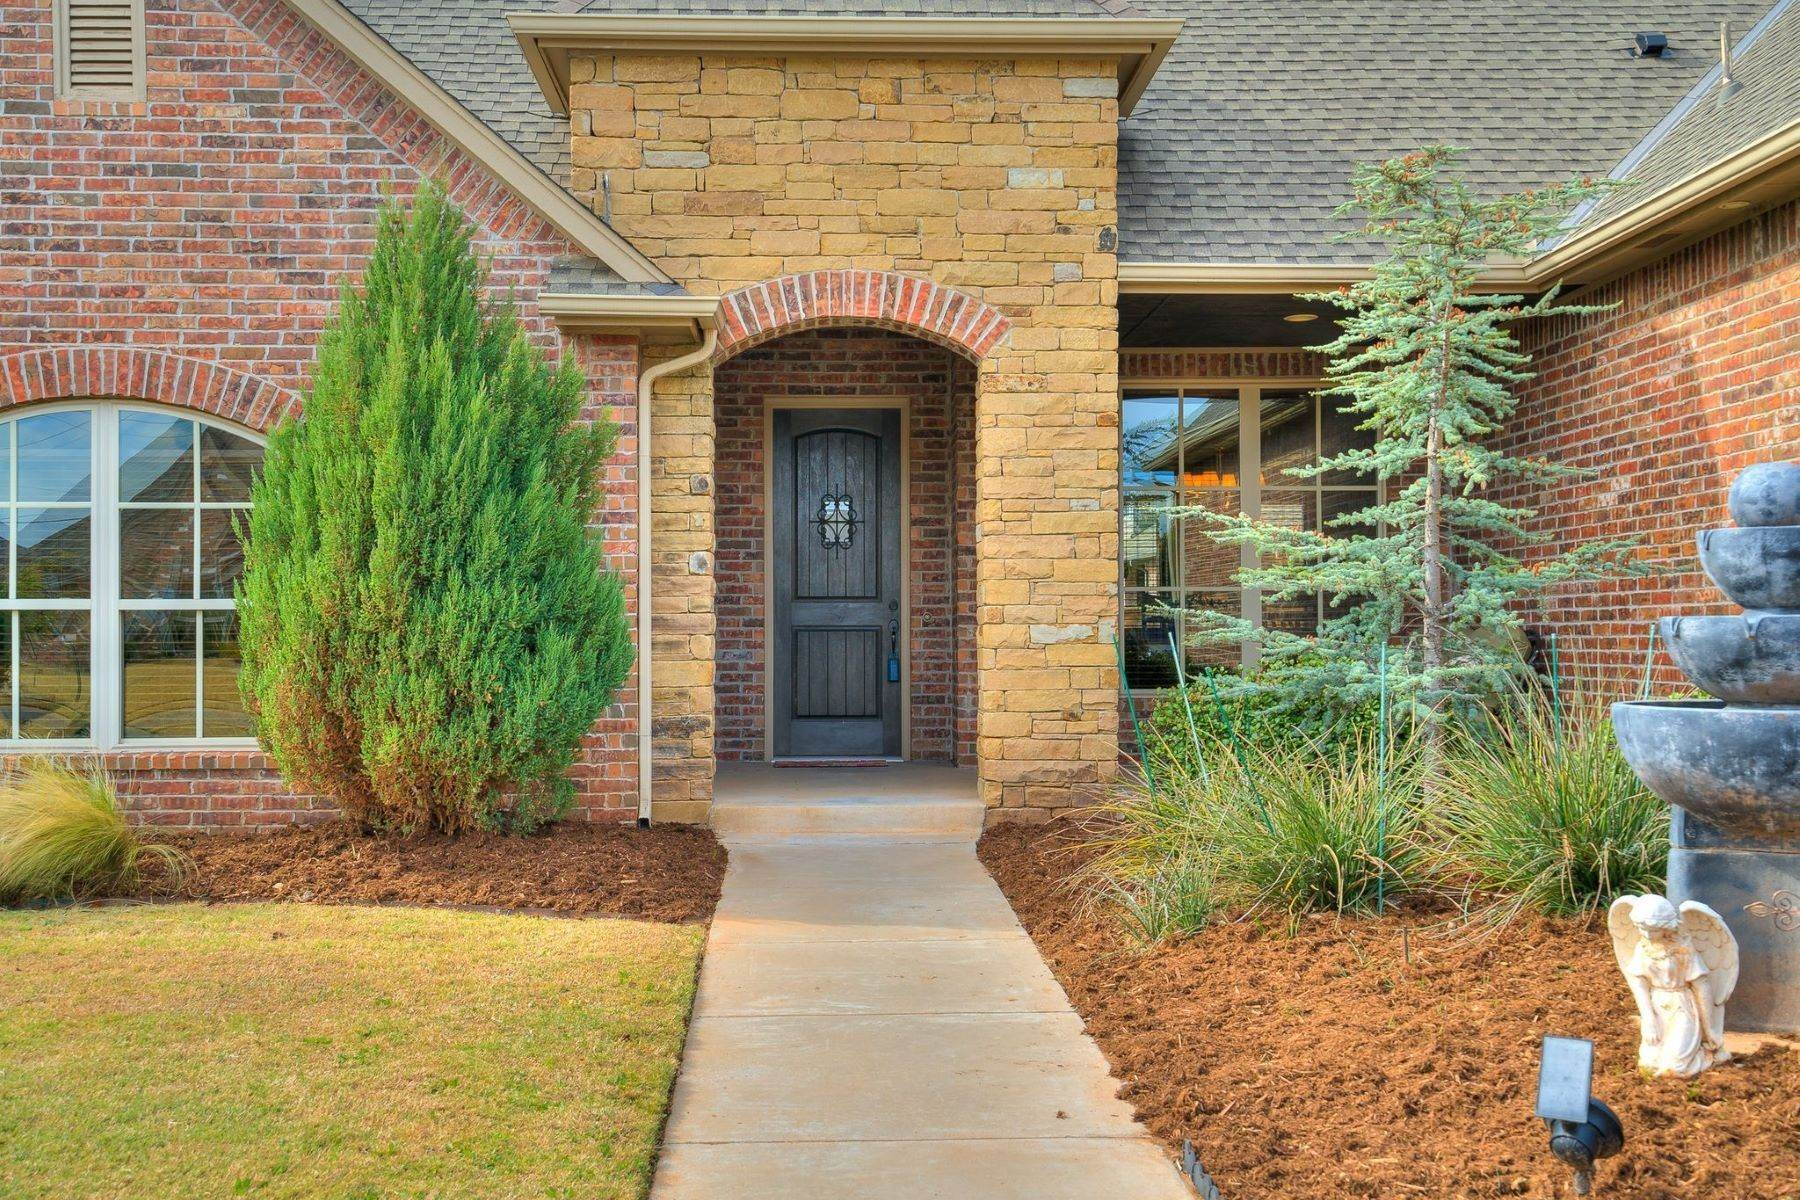 Single Family Homes for Sale at 13213 Rock Canyon Road, Oklahoma City, Ok, 73142 13213 Rock Canyon Road Oklahoma City, Oklahoma 73142 United States